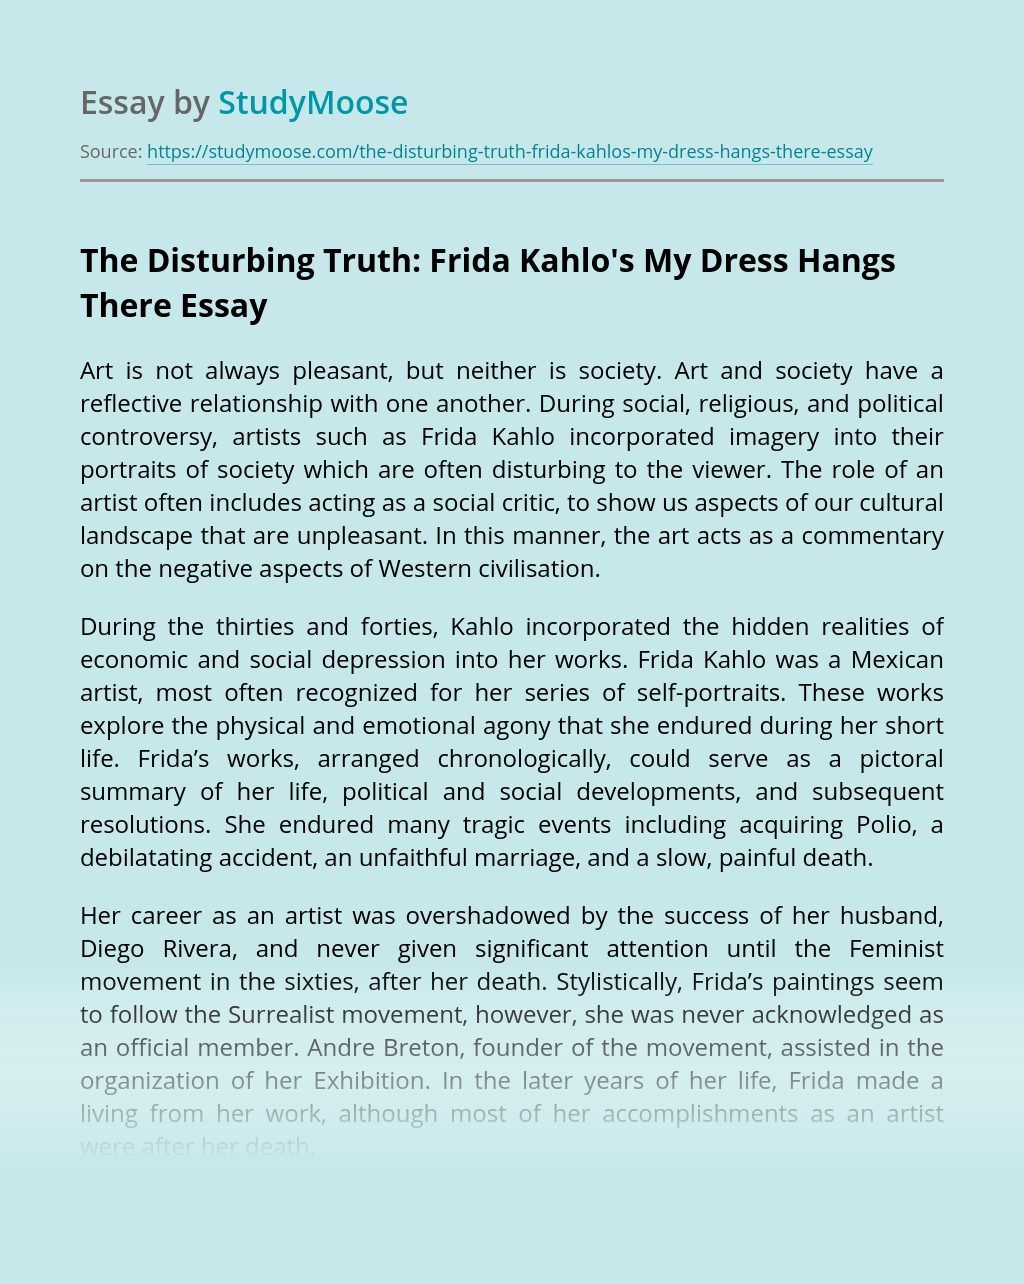 The Disturbing Truth: Frida Kahlo's My Dress Hangs There